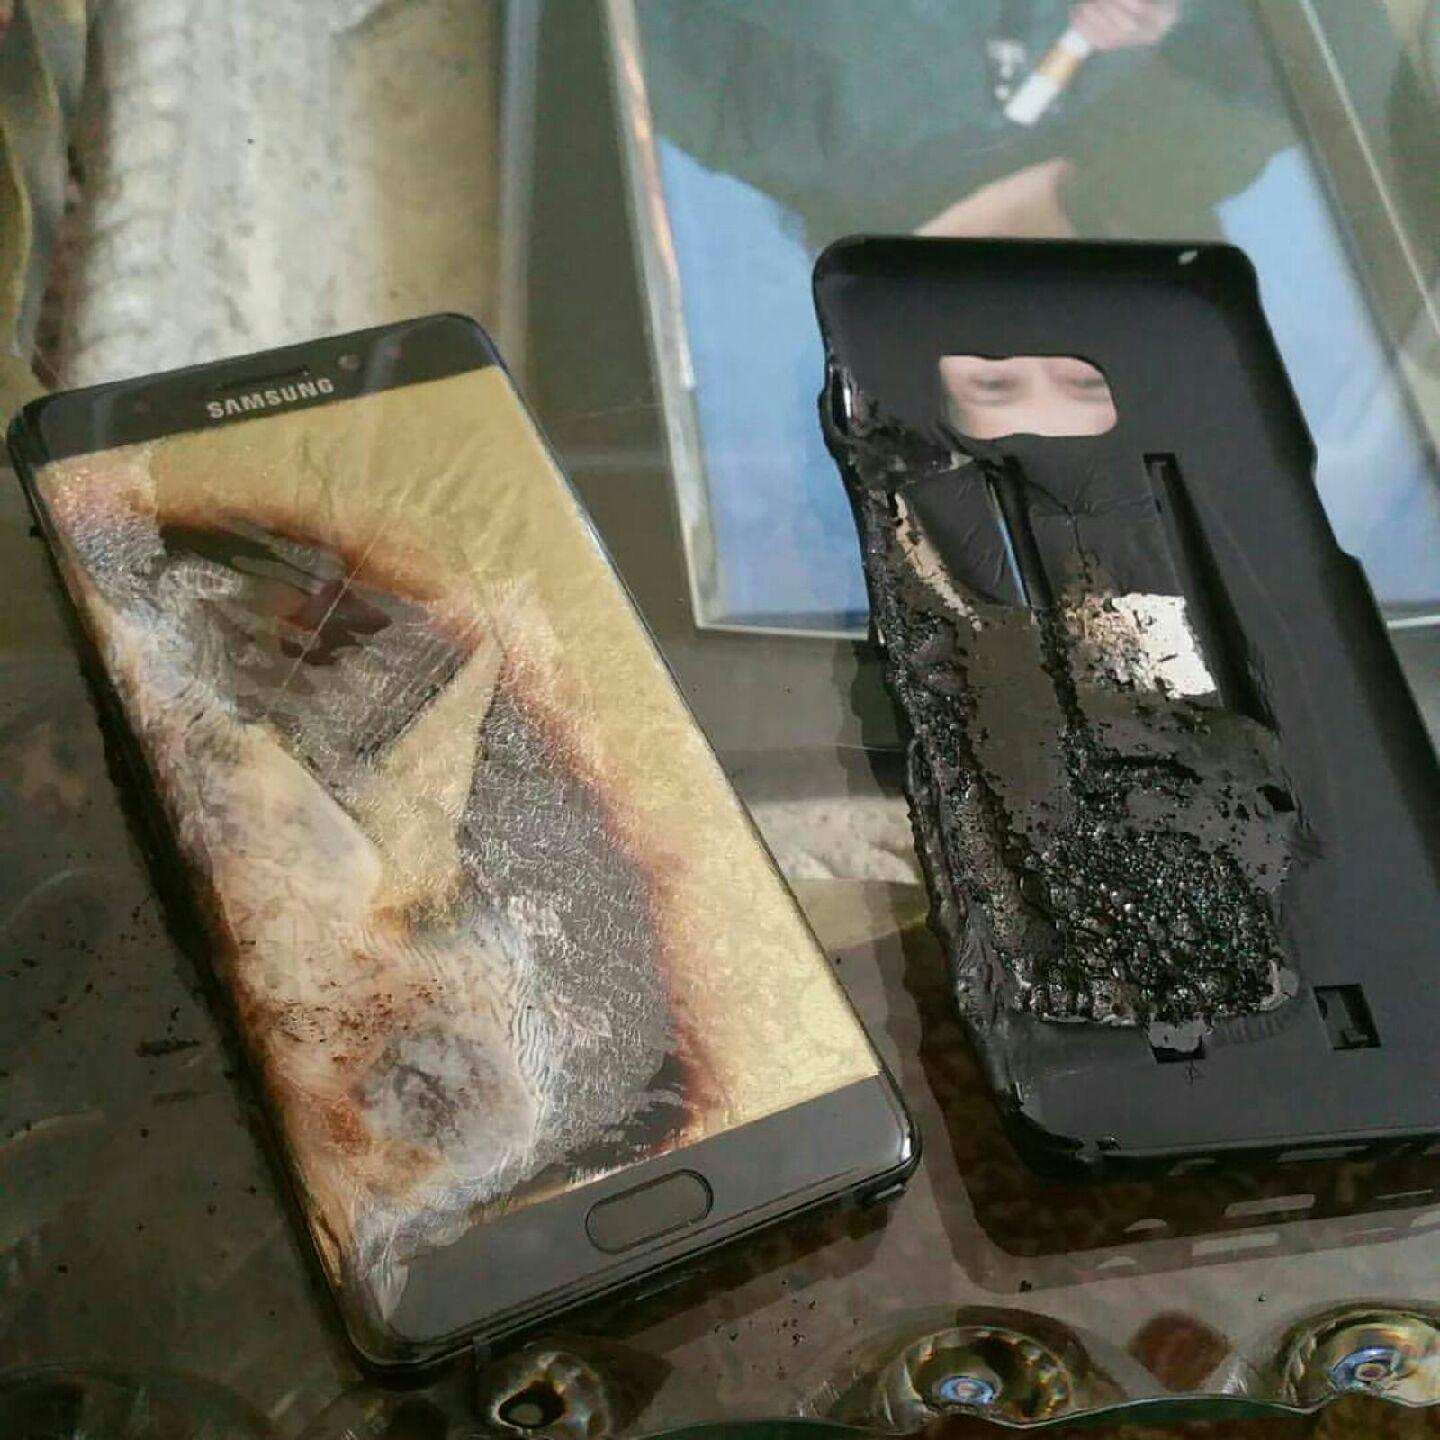 Samsung reportedly suspends Galaxy Note 7 production – BGR